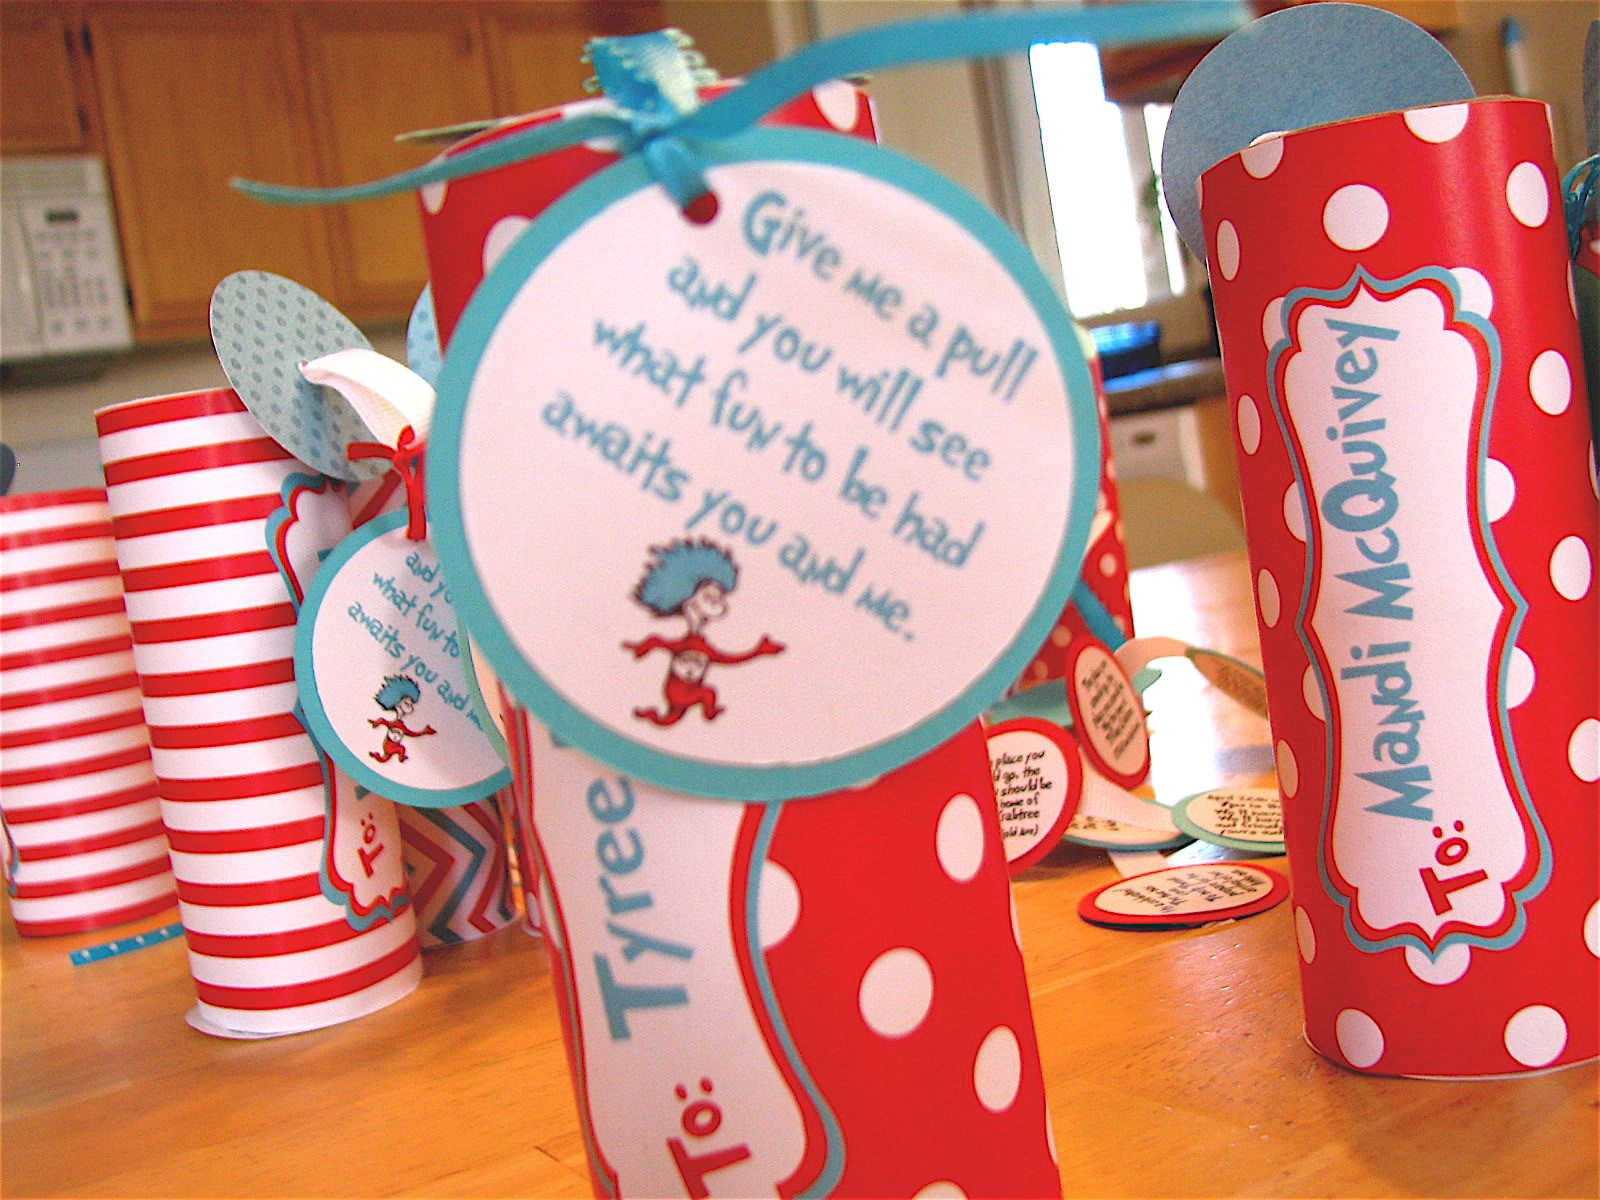 Dr Seuss Baby Shower Ideas   designed water bottle labels and added ...